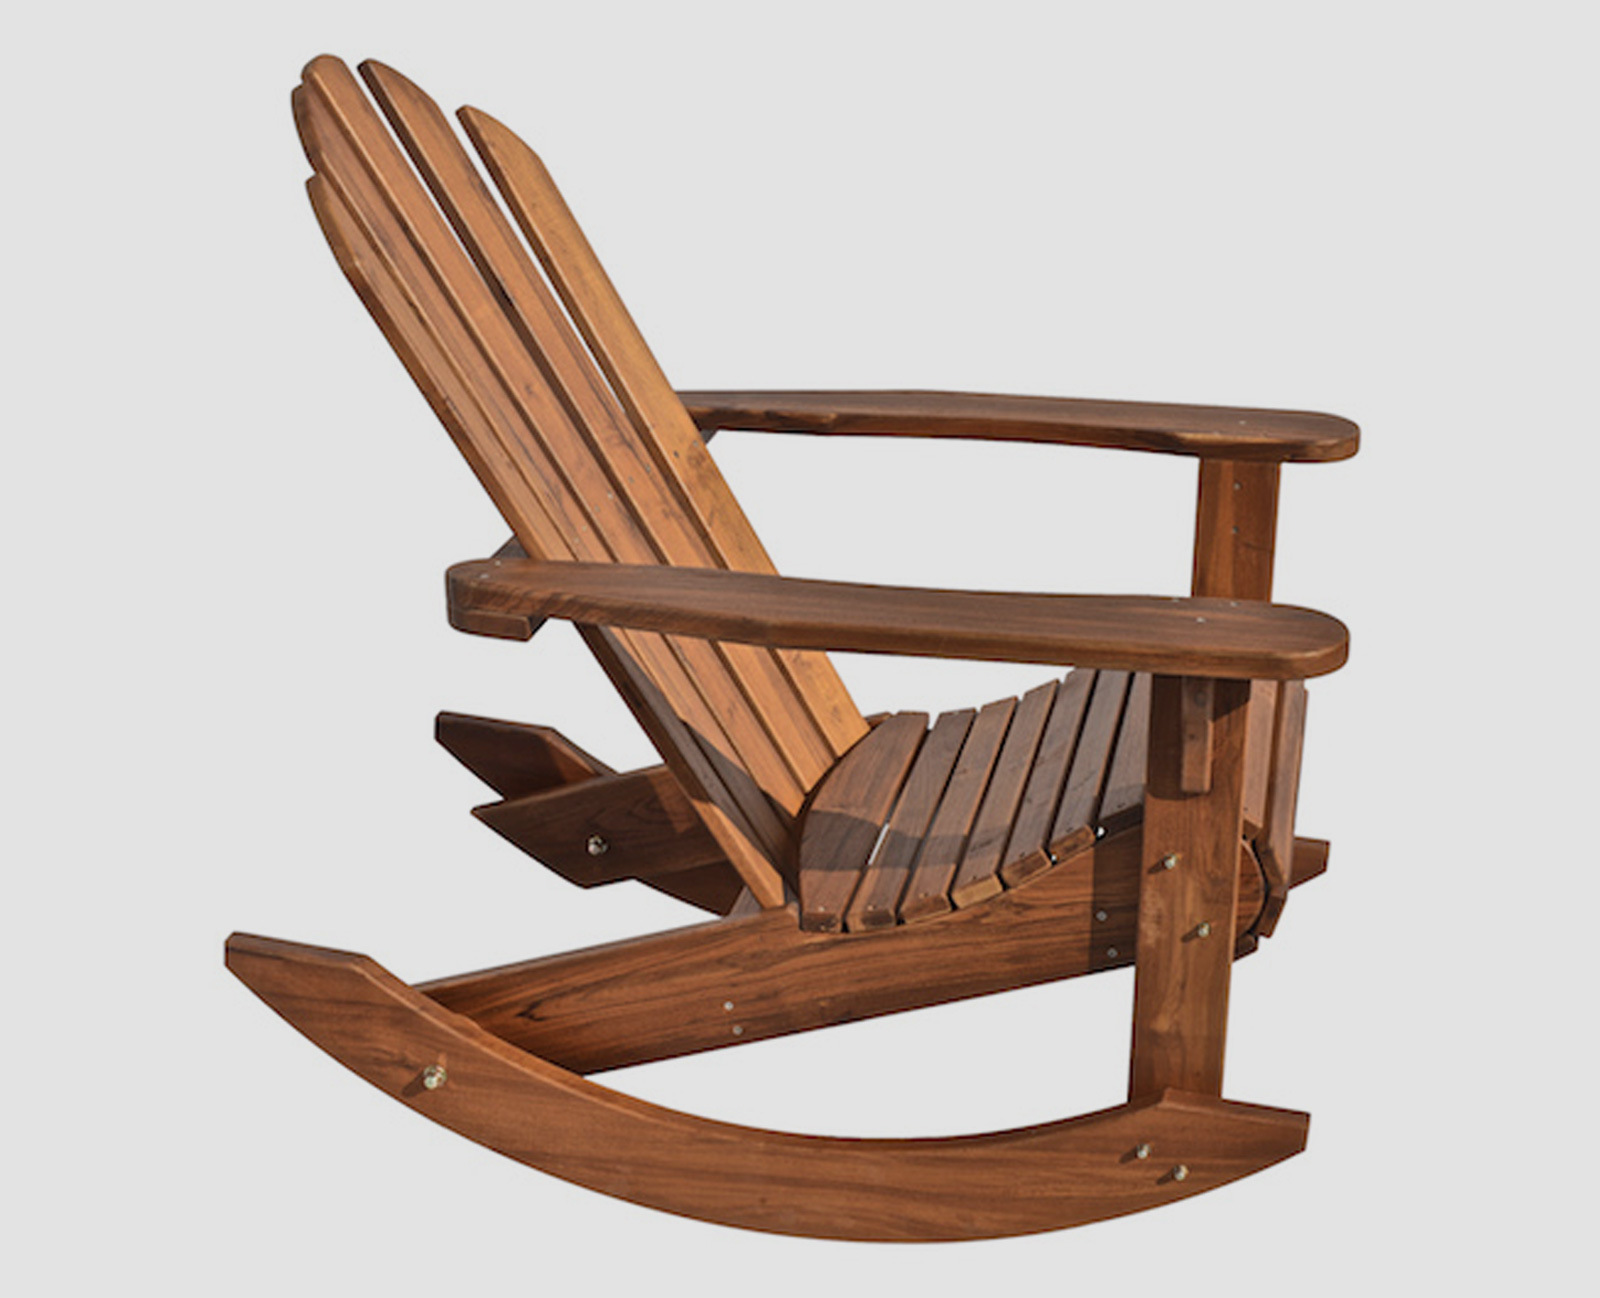 hd natural outdoor cedar chair patterns adirondack polywood cushions wood white rocking mesmerizing folding deck bed free stock plans diy fir photos teak garden